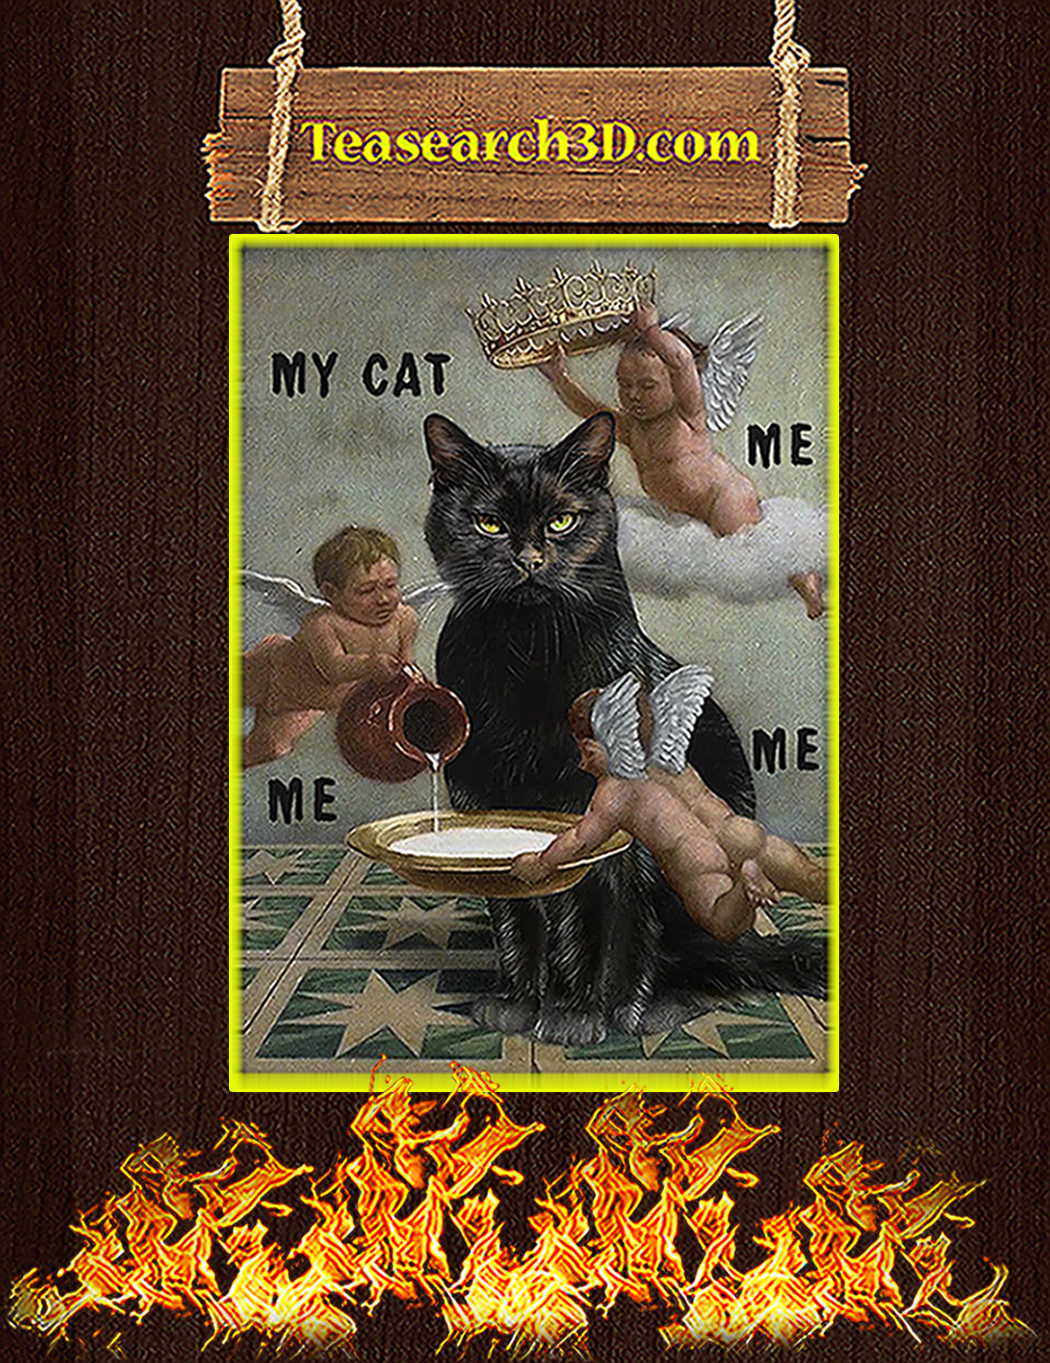 Black cat meme my cat me me me poster A1